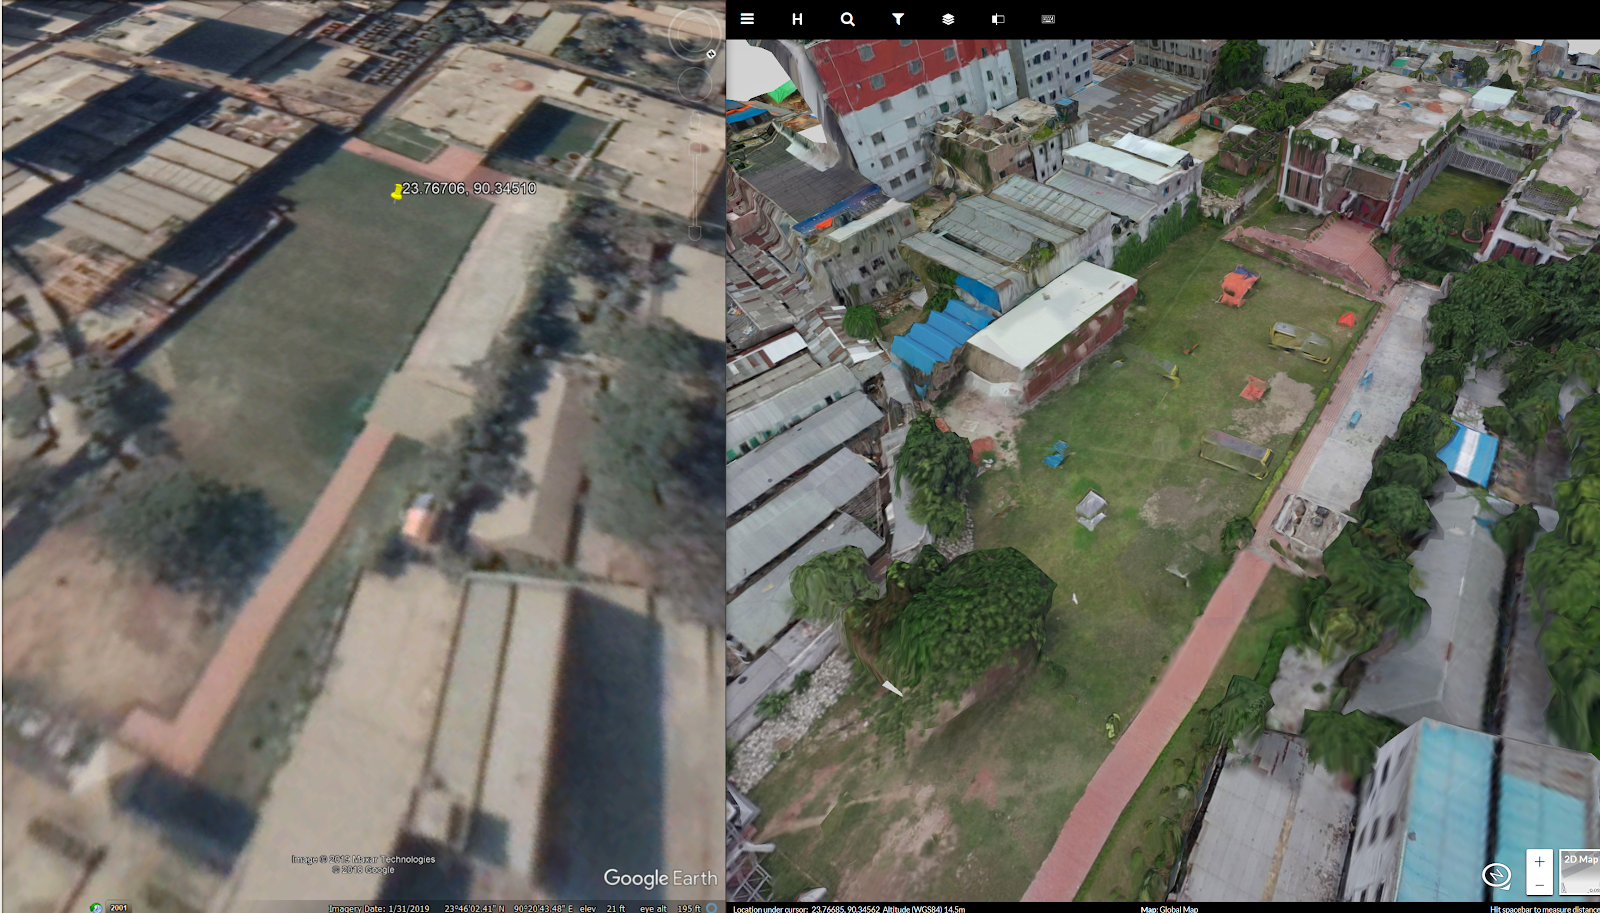 Mapping informal settlements in Bangladesh - The Official